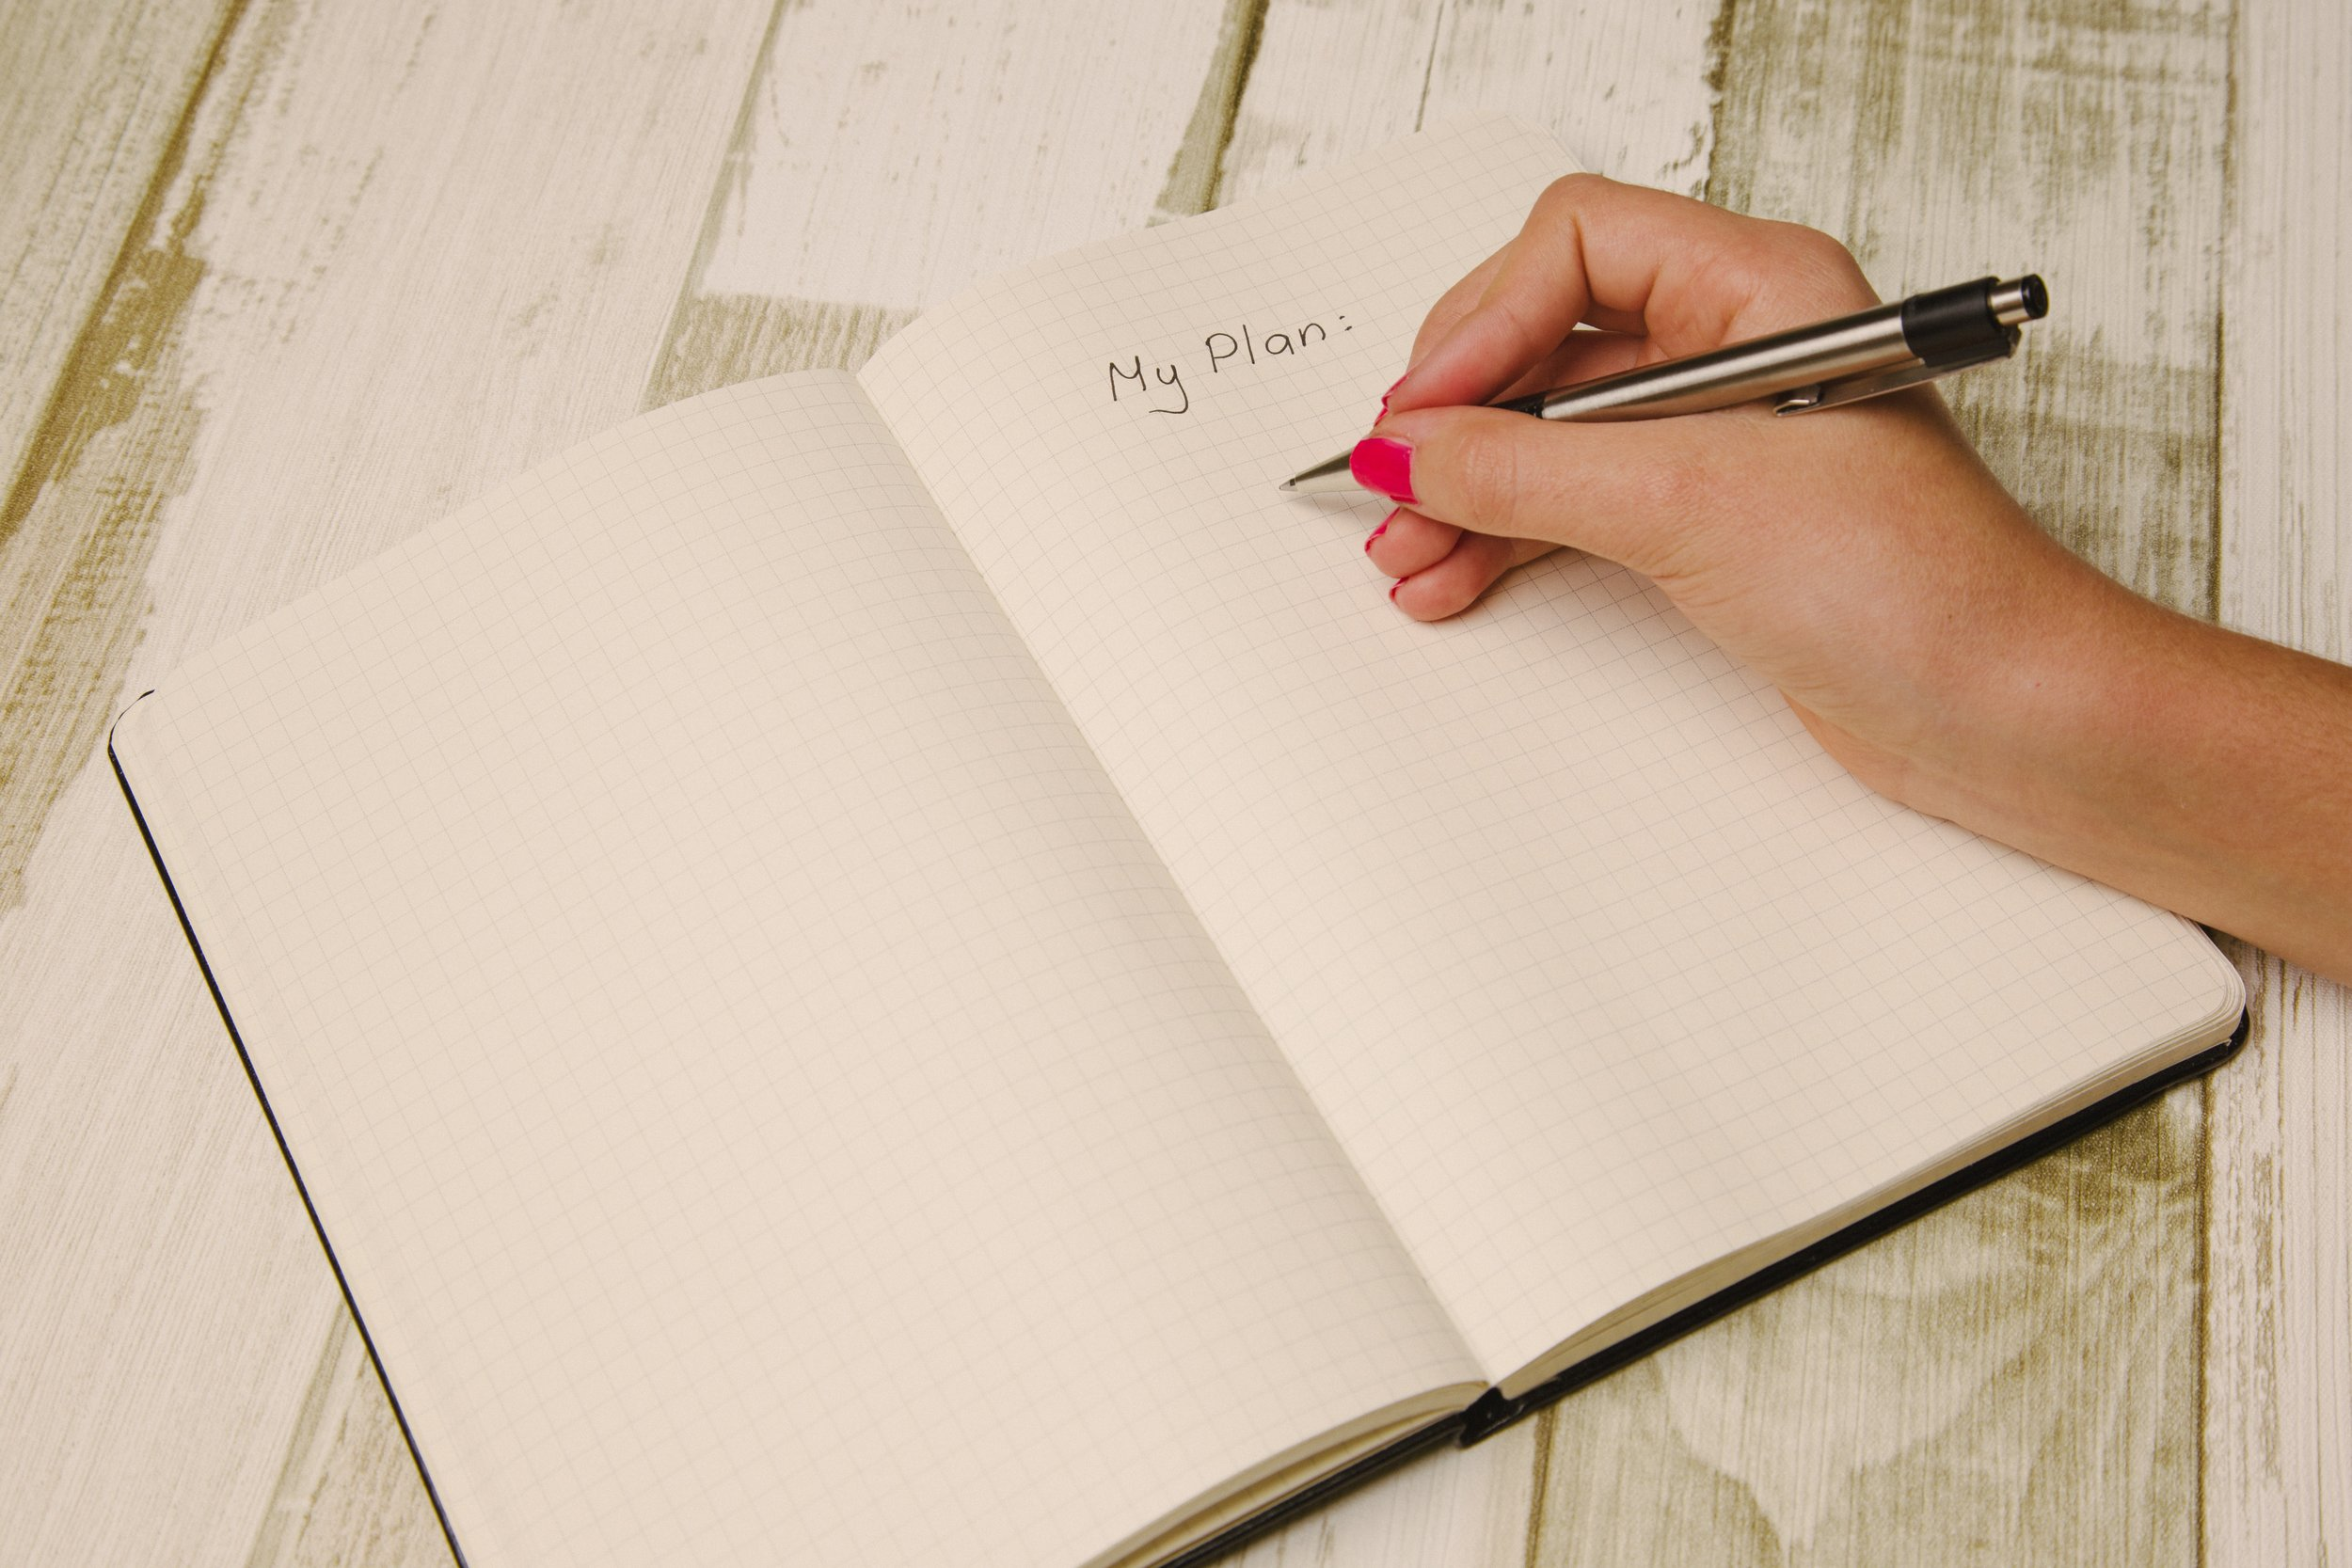 Write down your goals, and the action steps for how to achieve them.